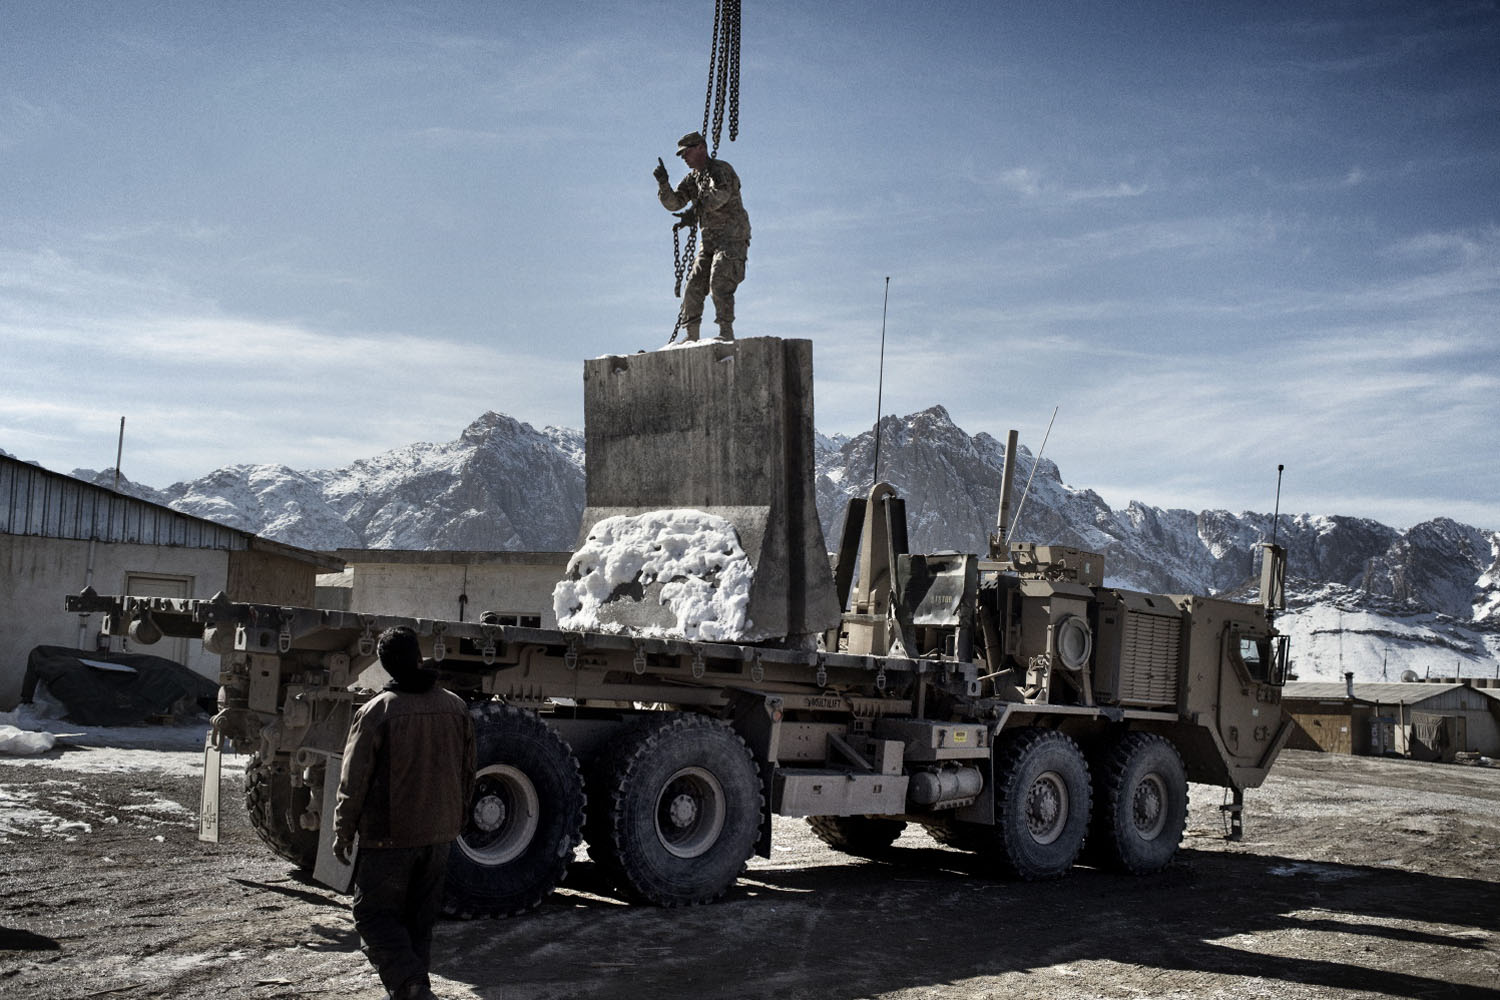 A soldier from Bull Battery, 4-319th Airborne Field Artillery Battalion loads concrete blocks on a truck in preparation for leaving Forward Operating Altimur, Logar Province, Afghanistan.